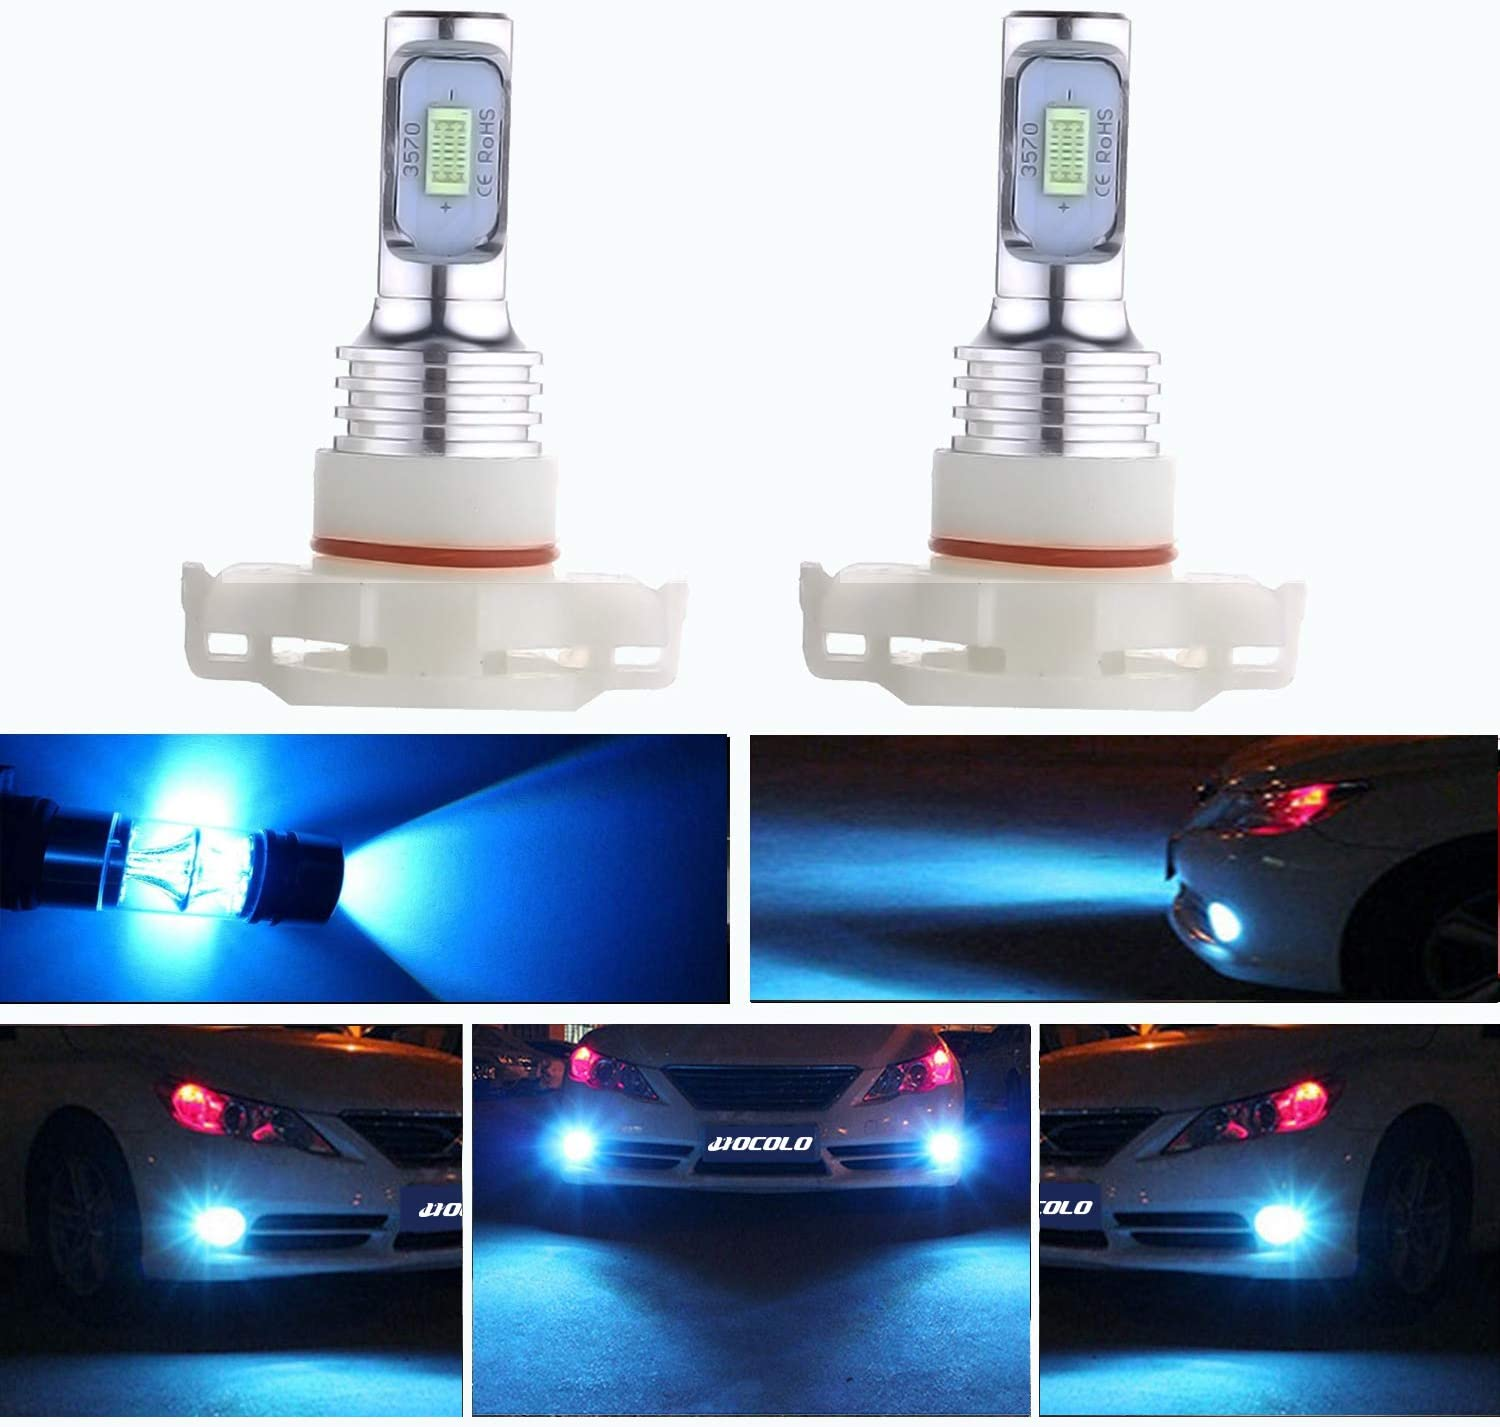 HOCOLO 5202 PS24W H16(H16 Only Fit European Car!)LED Bulb Ice Blue 8000K Fog Driving Light DRL Daytime Running Lights 3570 Chips High Power Brighting LED Fog Lamp Bulbs(5202/PS24W_Fog,Ice Blue/8000K)